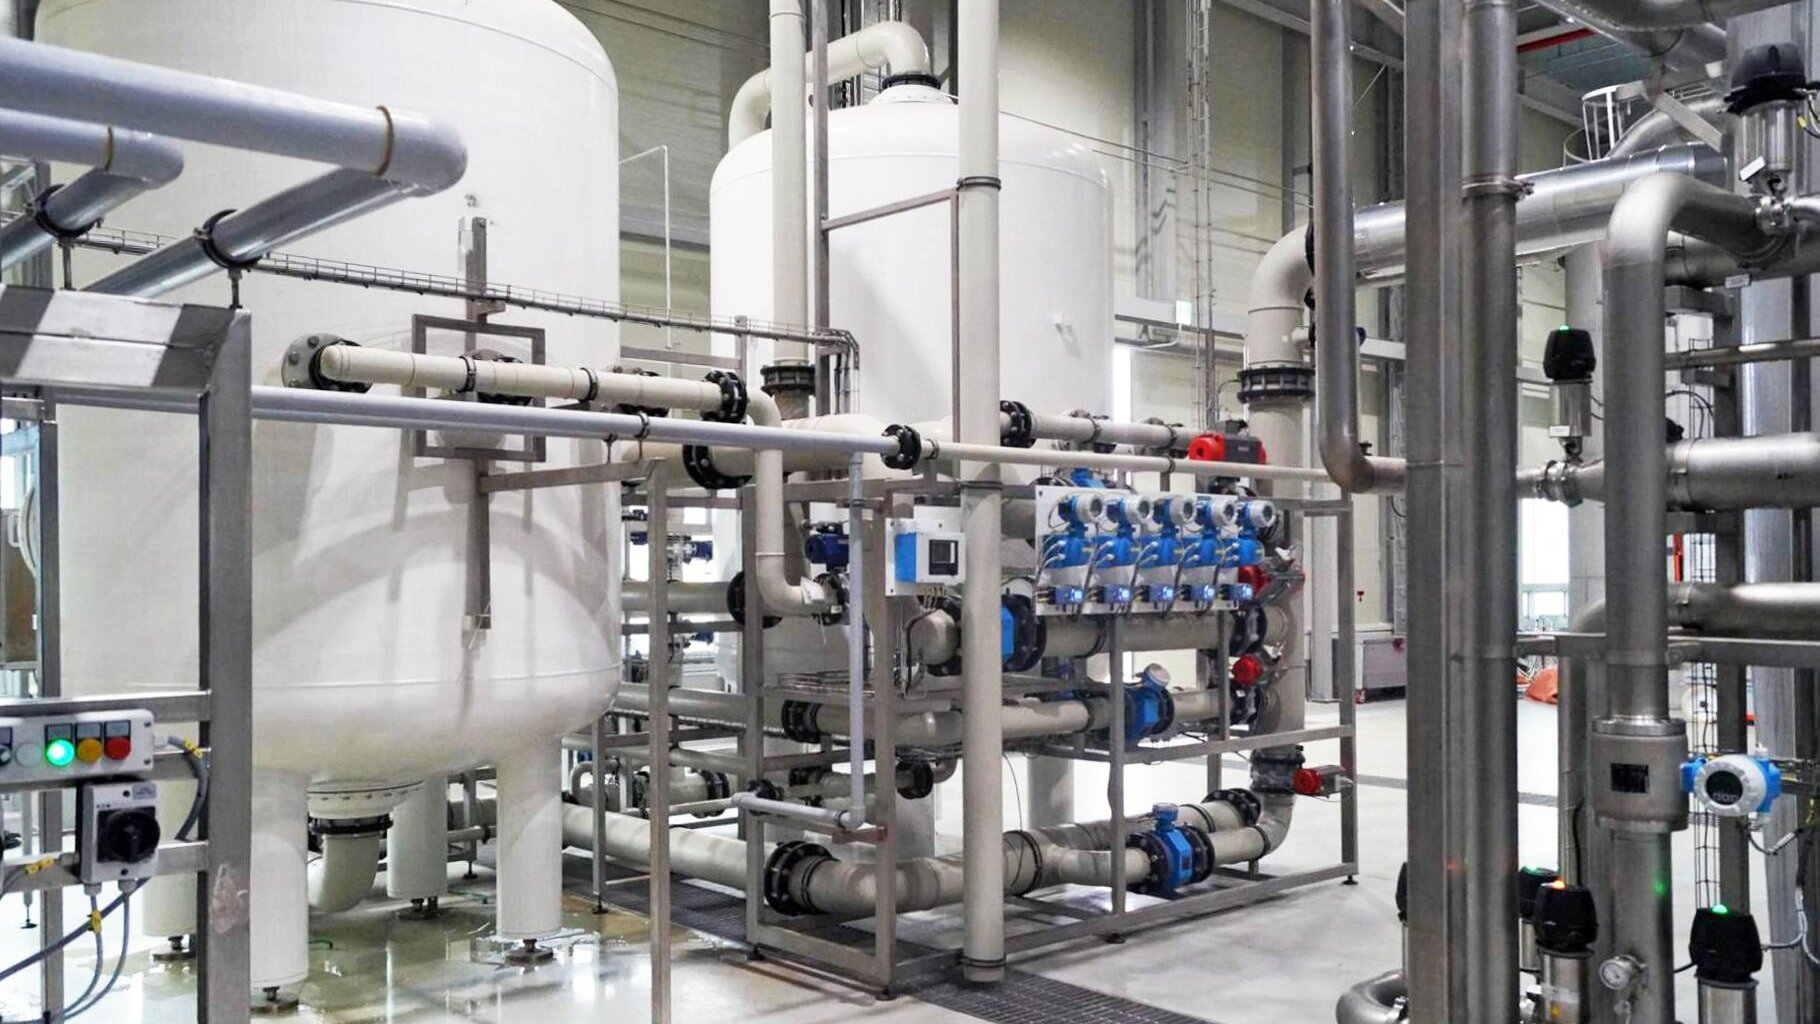 Gallery image 1 - Mineral water treatment plant in Germany, 2.400 m³/d